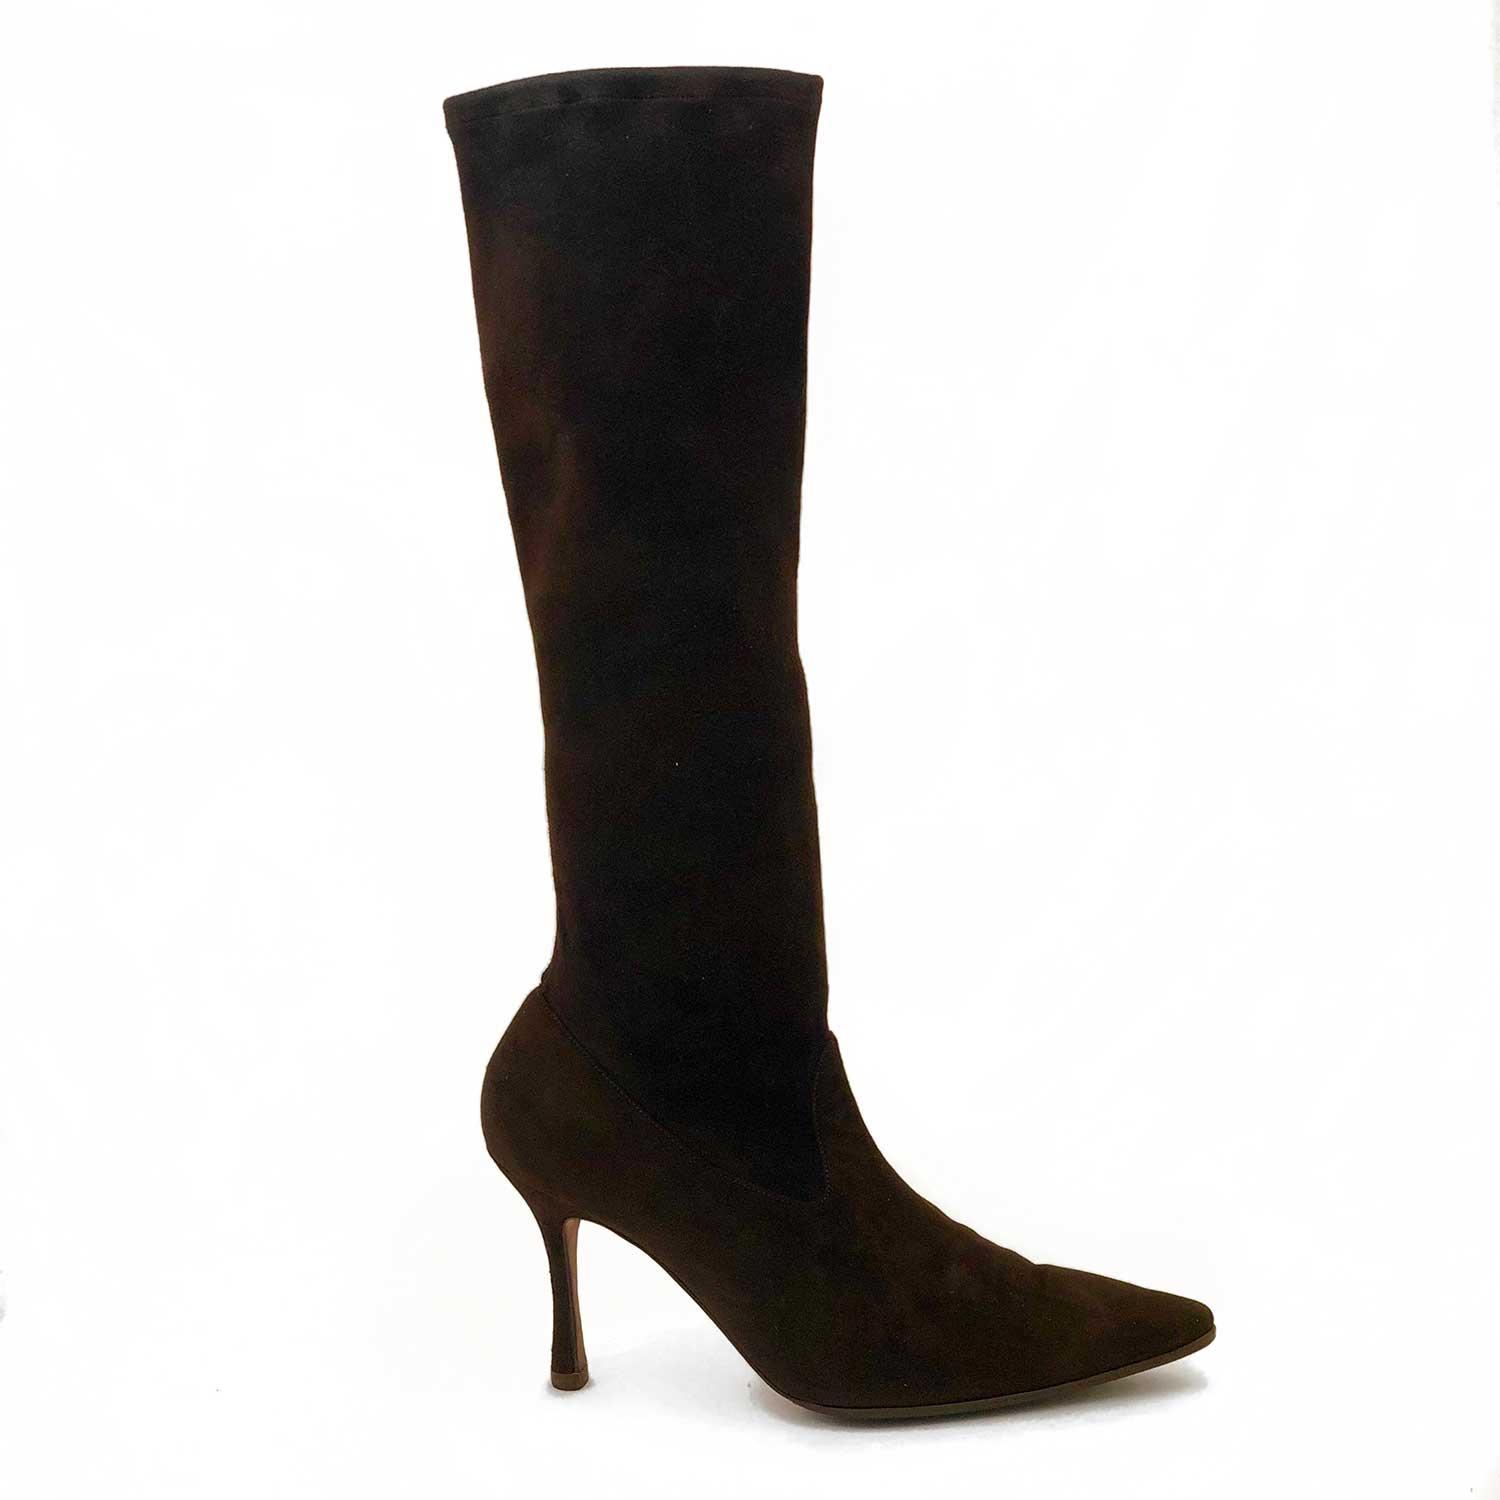 Bota Manolo Blahnik Camurça Marrom